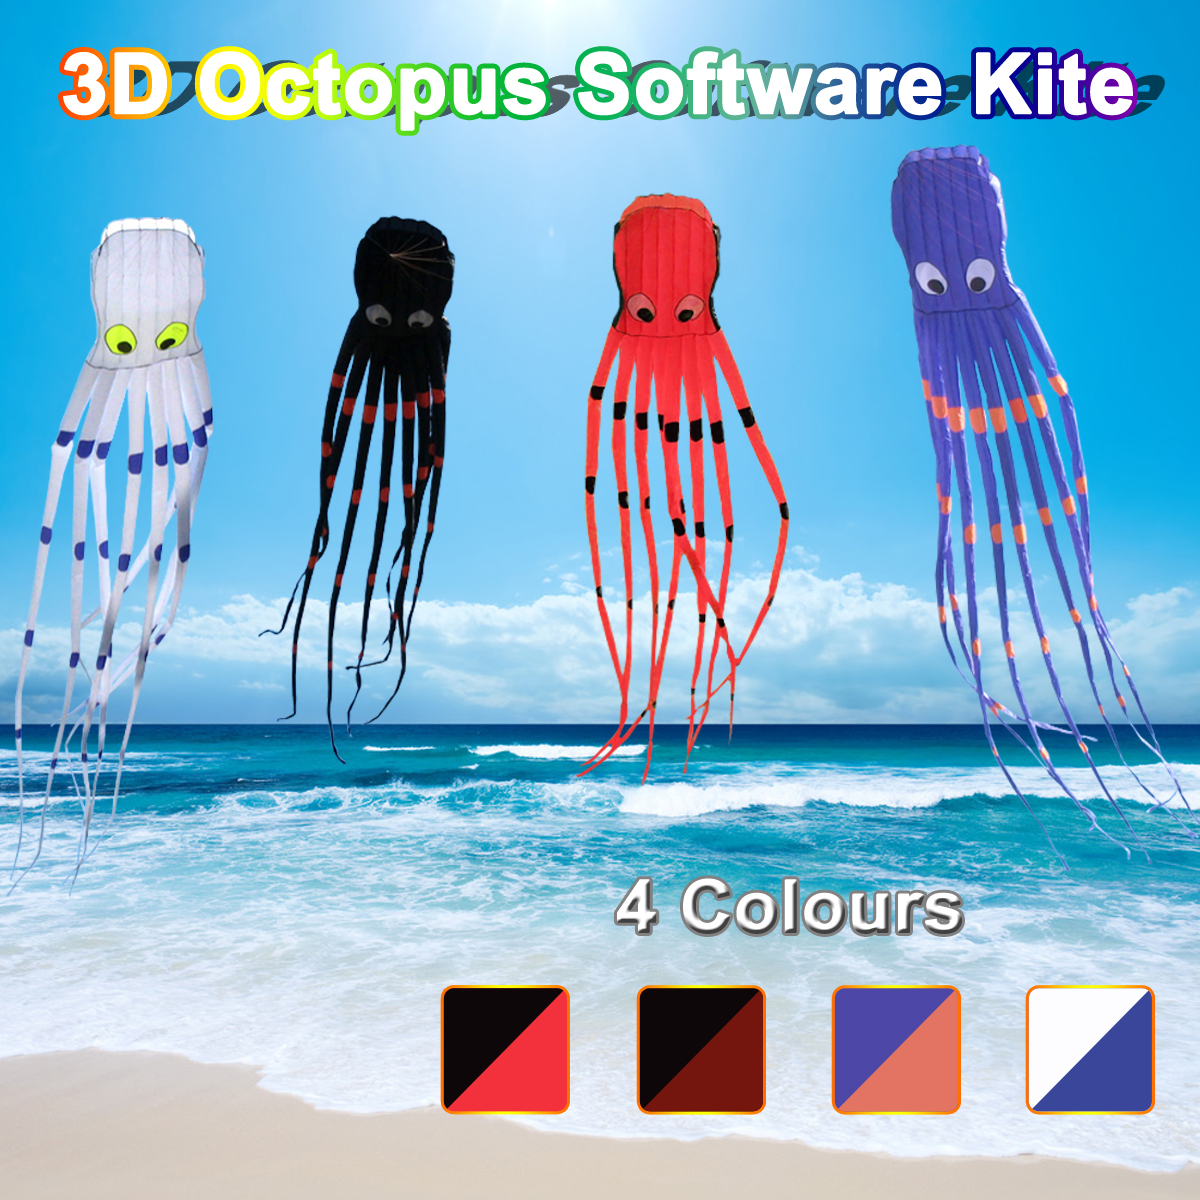 3D Octopus Nylon Kite Outdoor Sport 8M Flying Software Long Tail Kites Toys Huge Kite For Children Kids